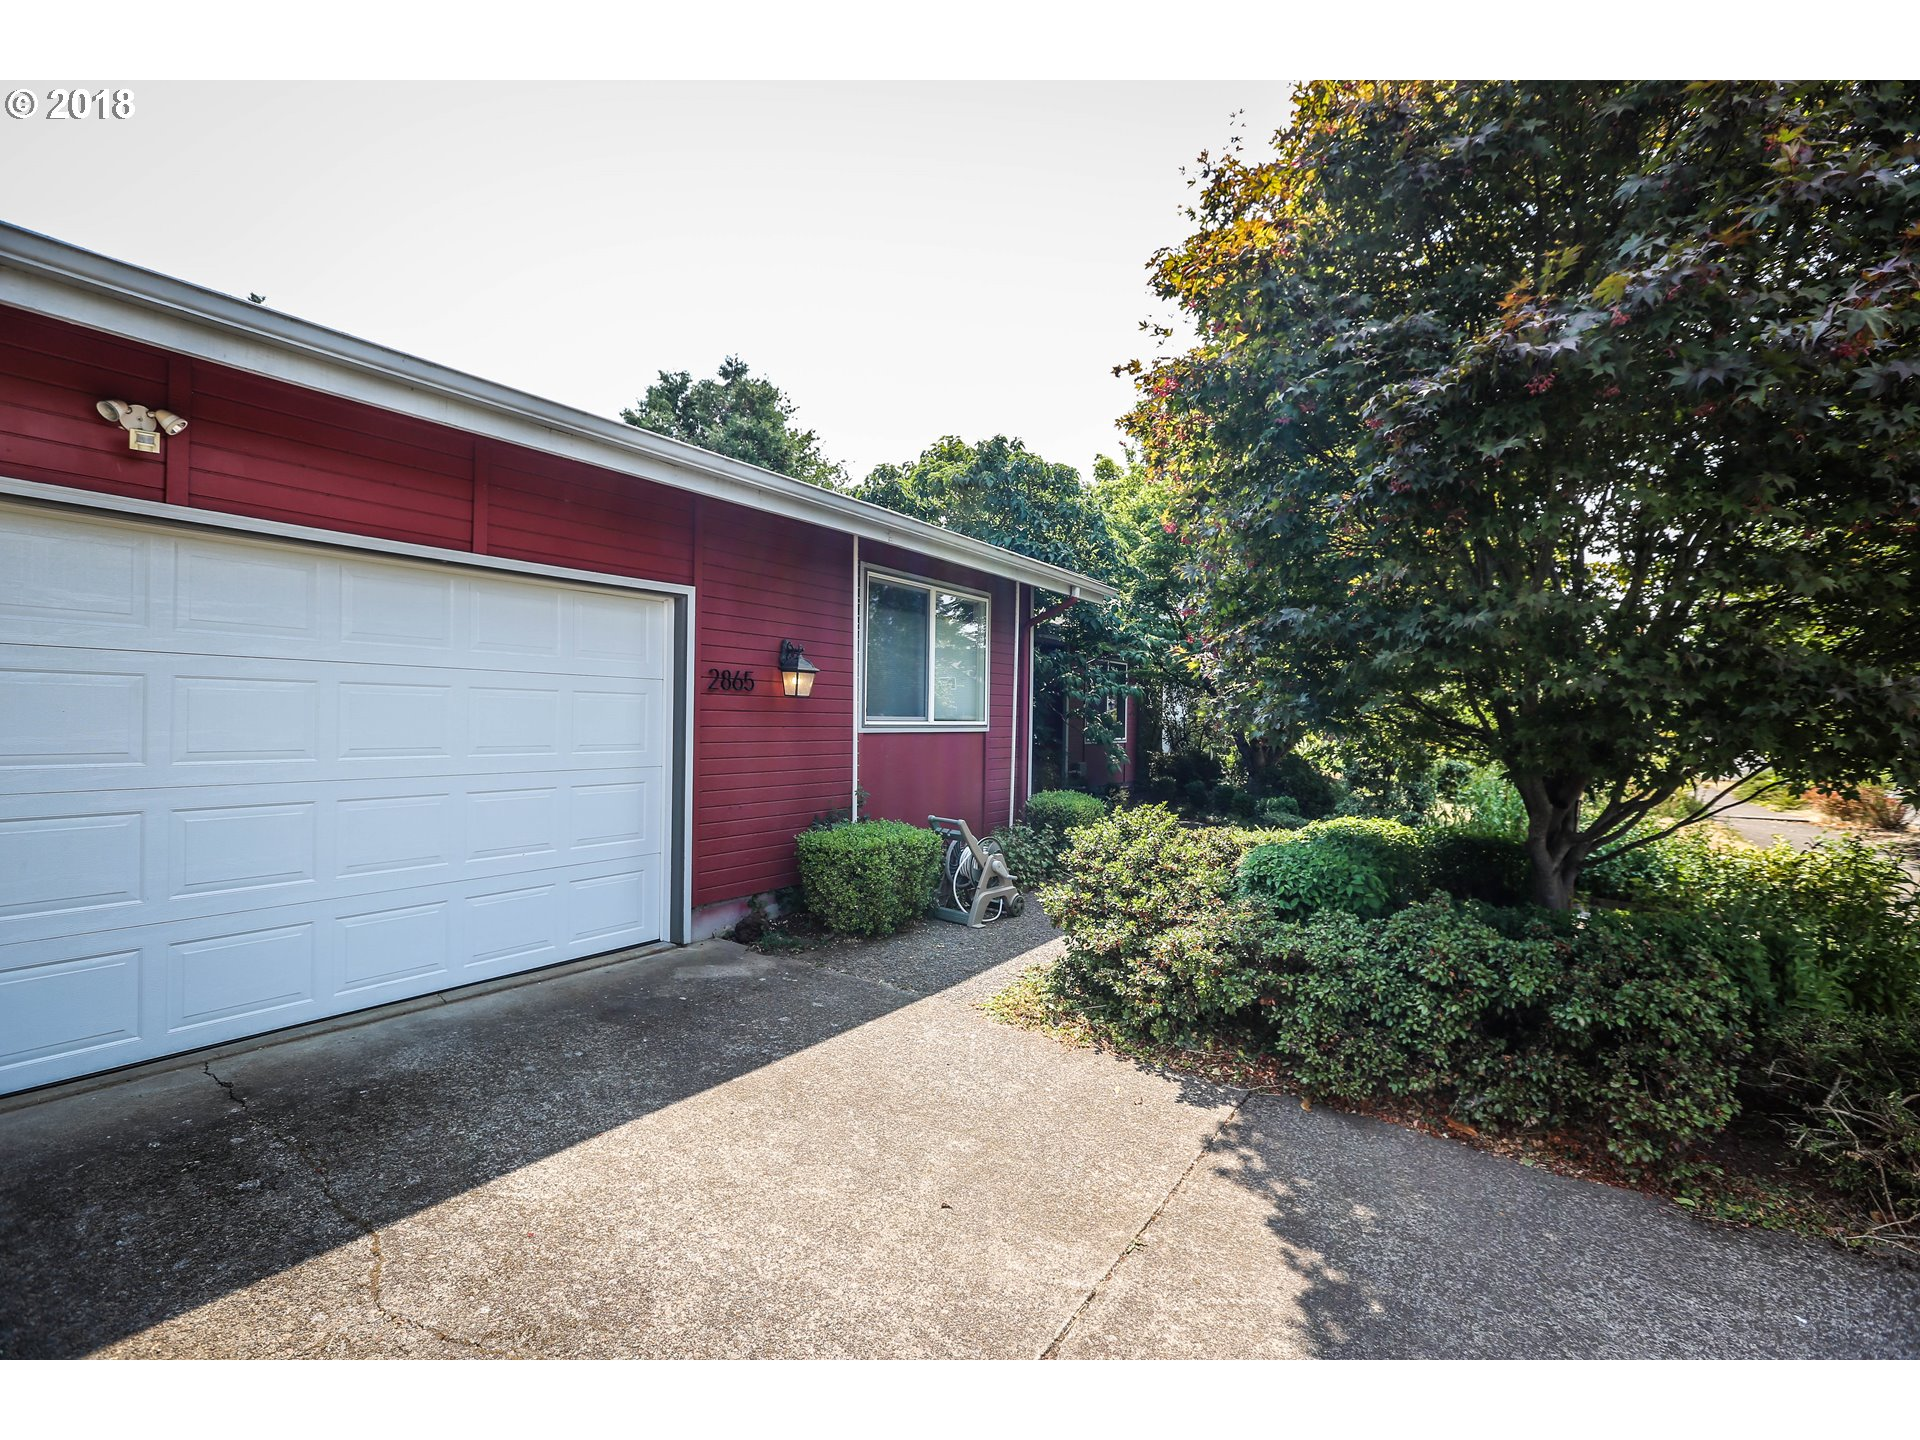 2865 CHUCKANUT ST Eugene, OR 97401 - MLS #: 18648540